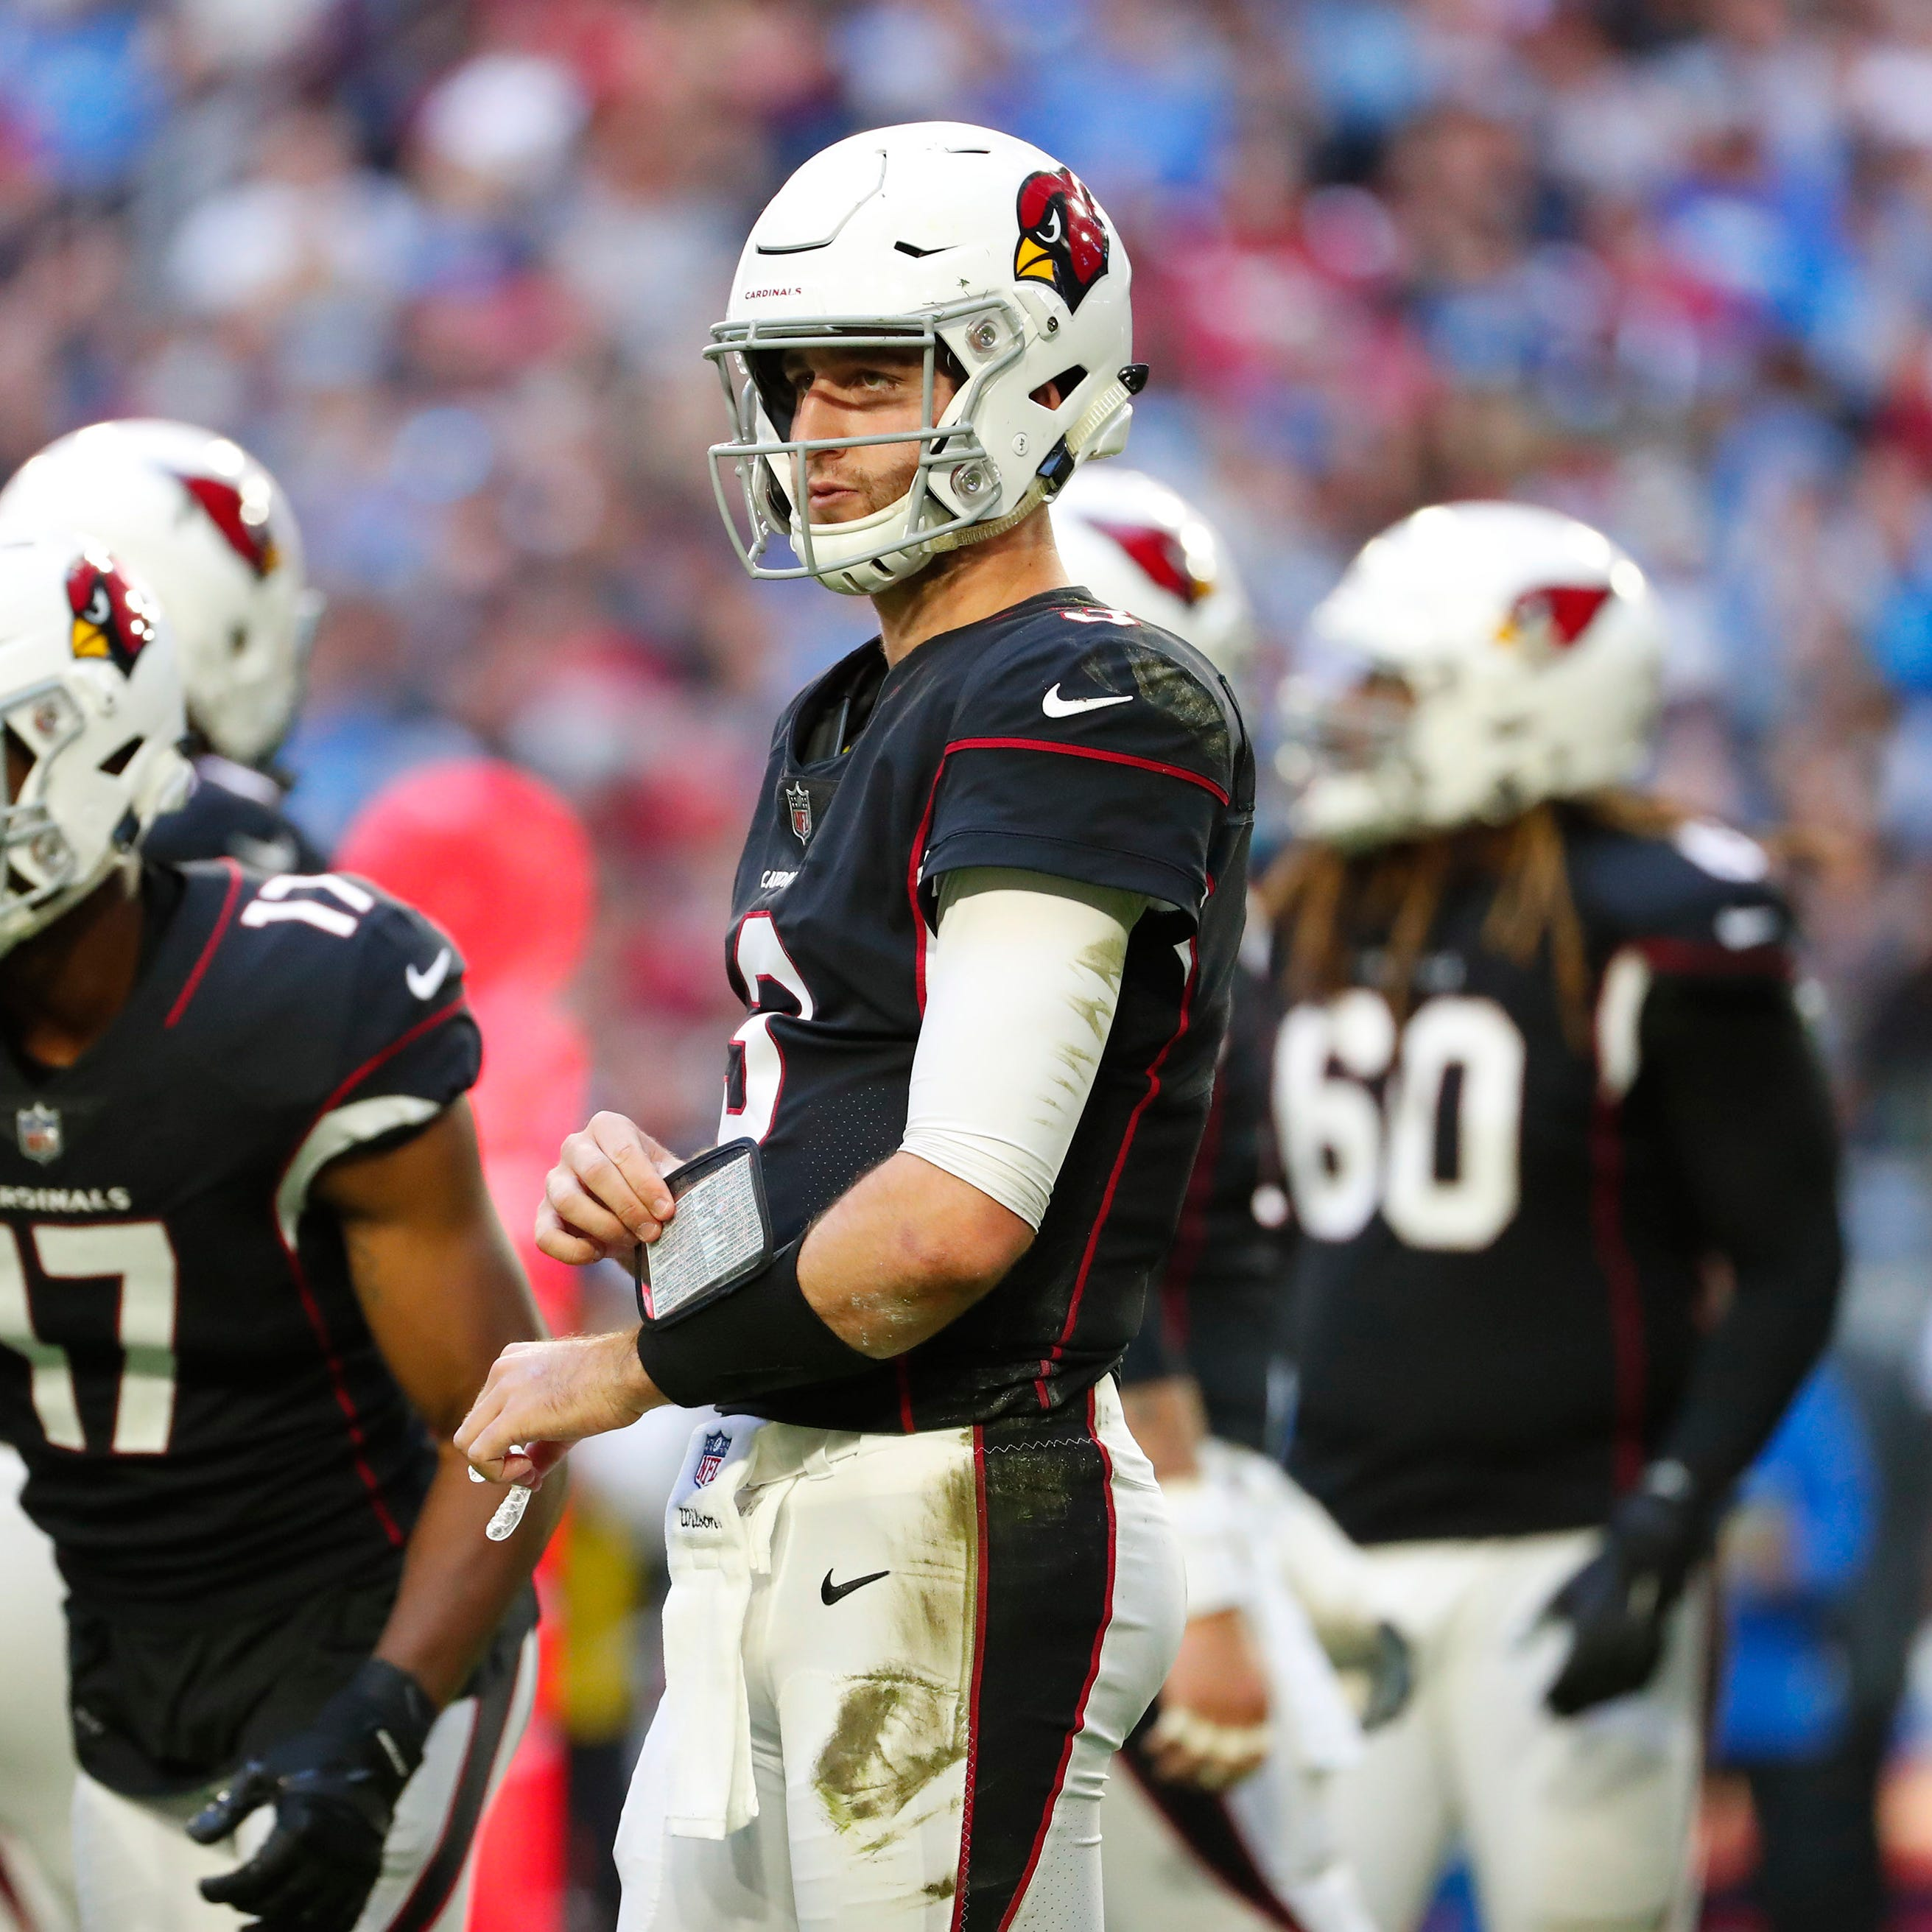 What must Josh Rosen must be thinking as hype swirls around Kyler Murray and the Cardinals?